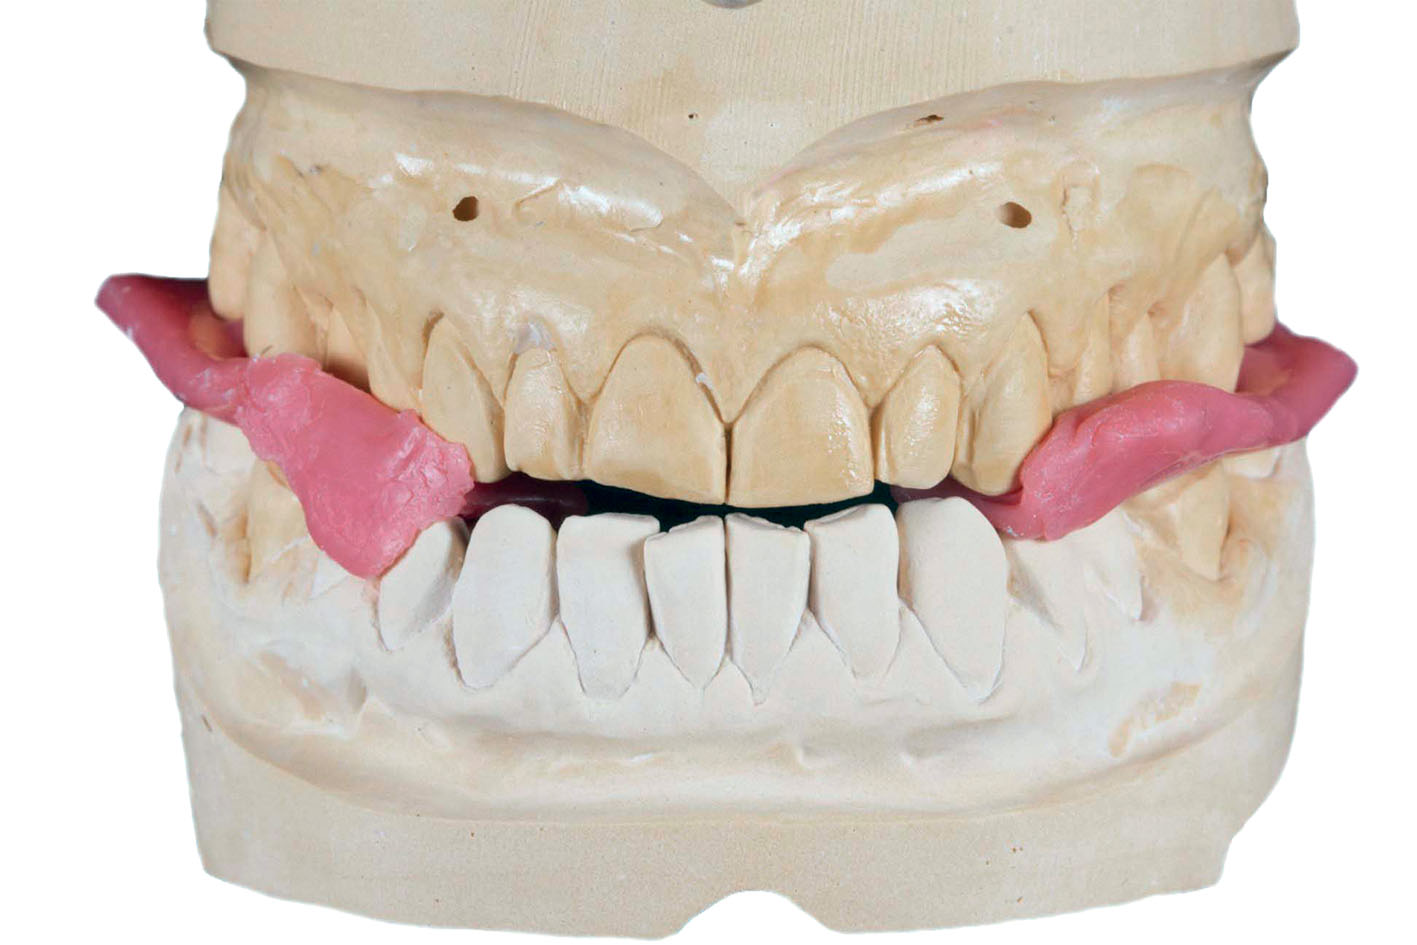 Figure 17 Restoration of the lost occlusal height